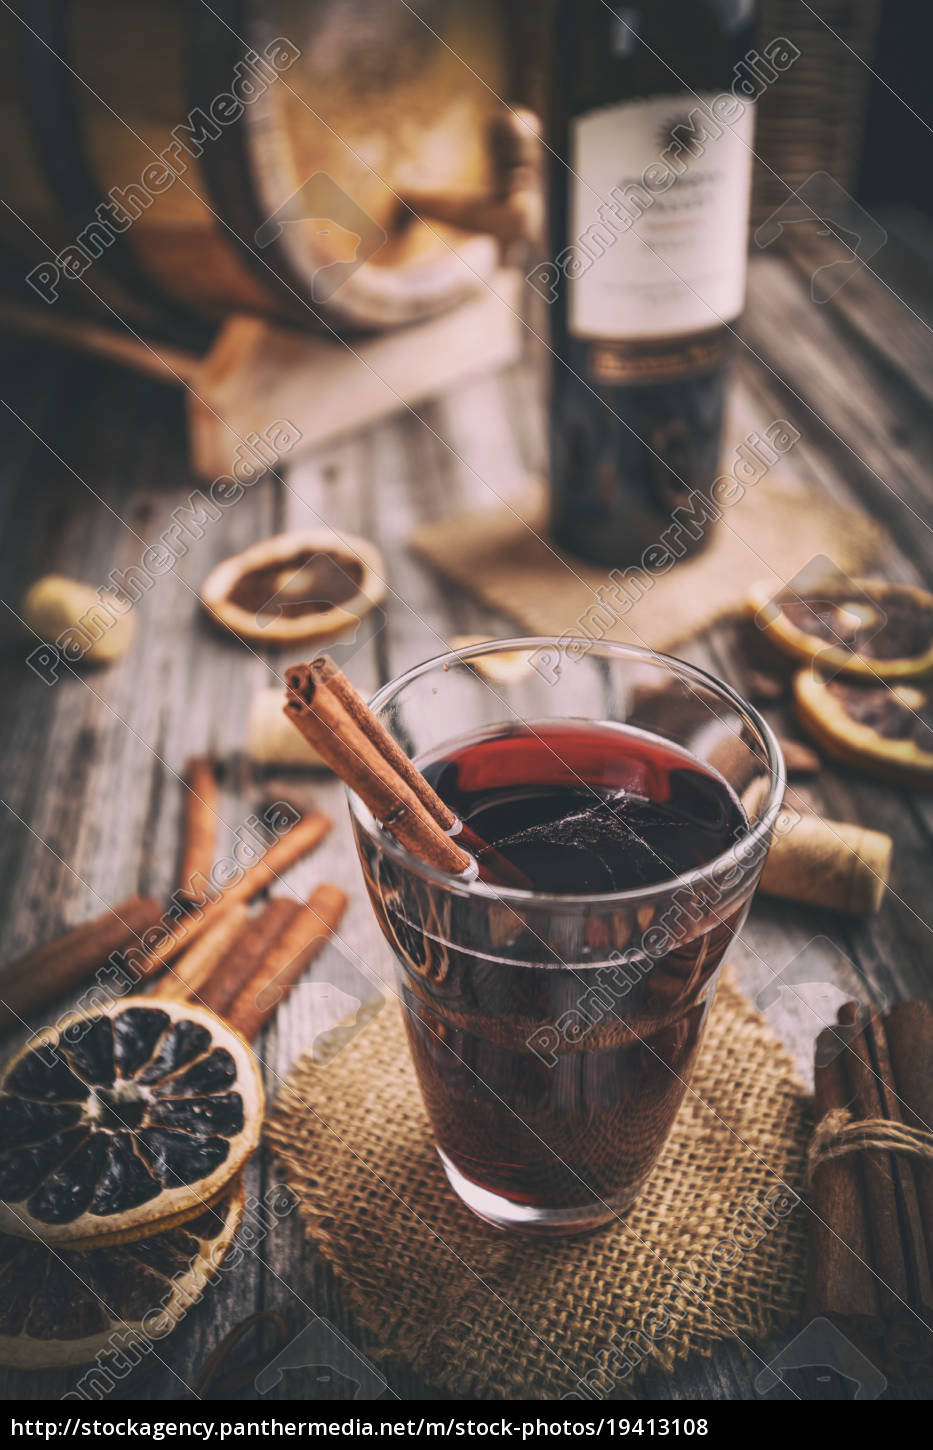 hot, alcohol, drink - 19413108